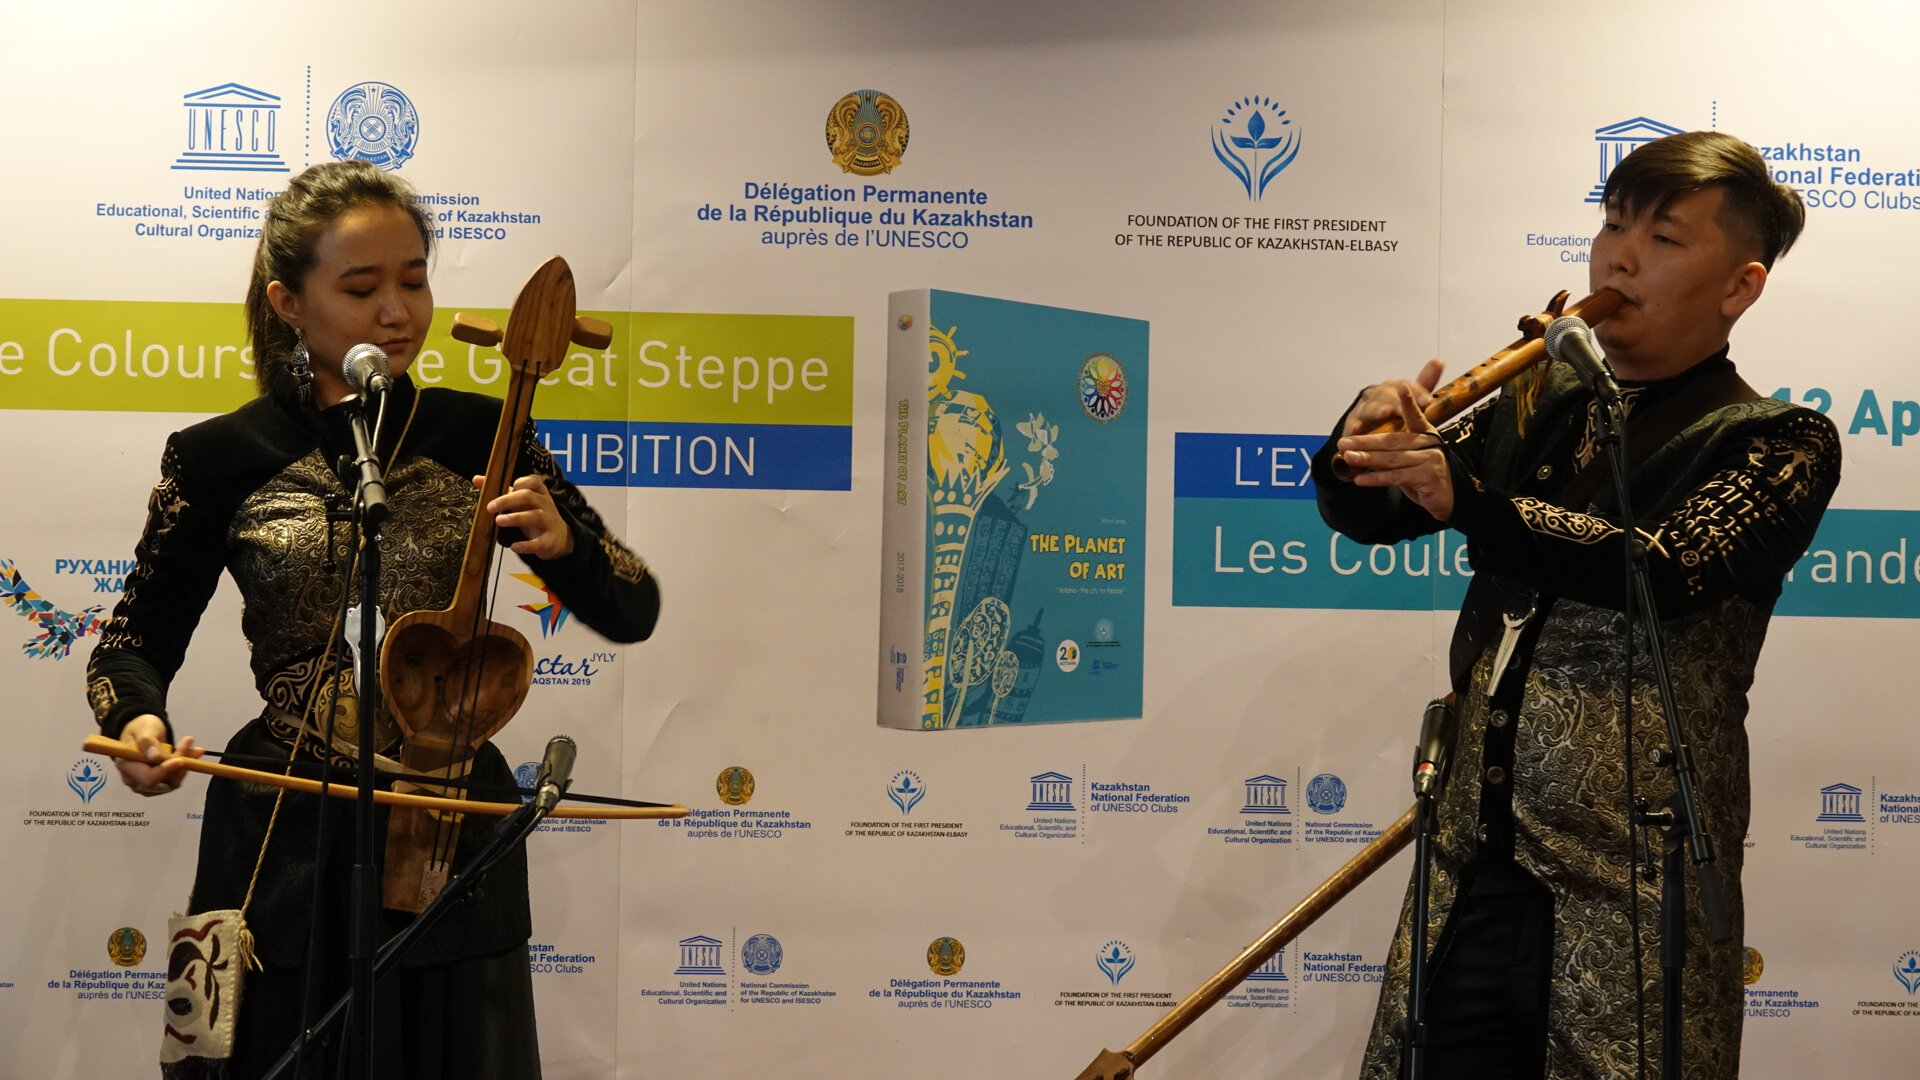 Colors of the Great Steppe Exhibition Held in UNESCO Headquarters in Paris